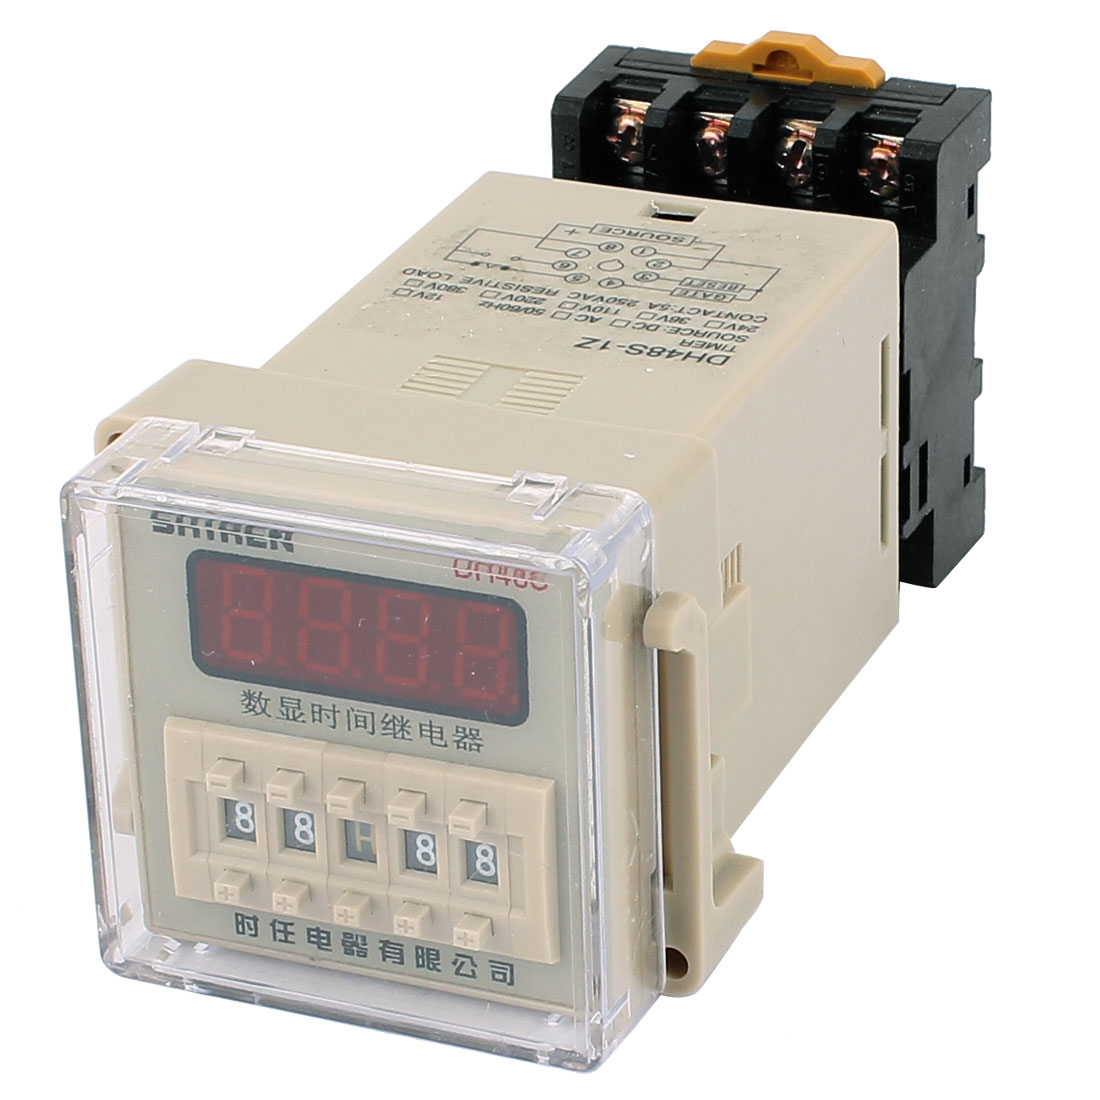 DH48S-11 AC/DC110V 11 Terminals 0.01S-9999H LCD Display Time Timer Delay Relay w Socket